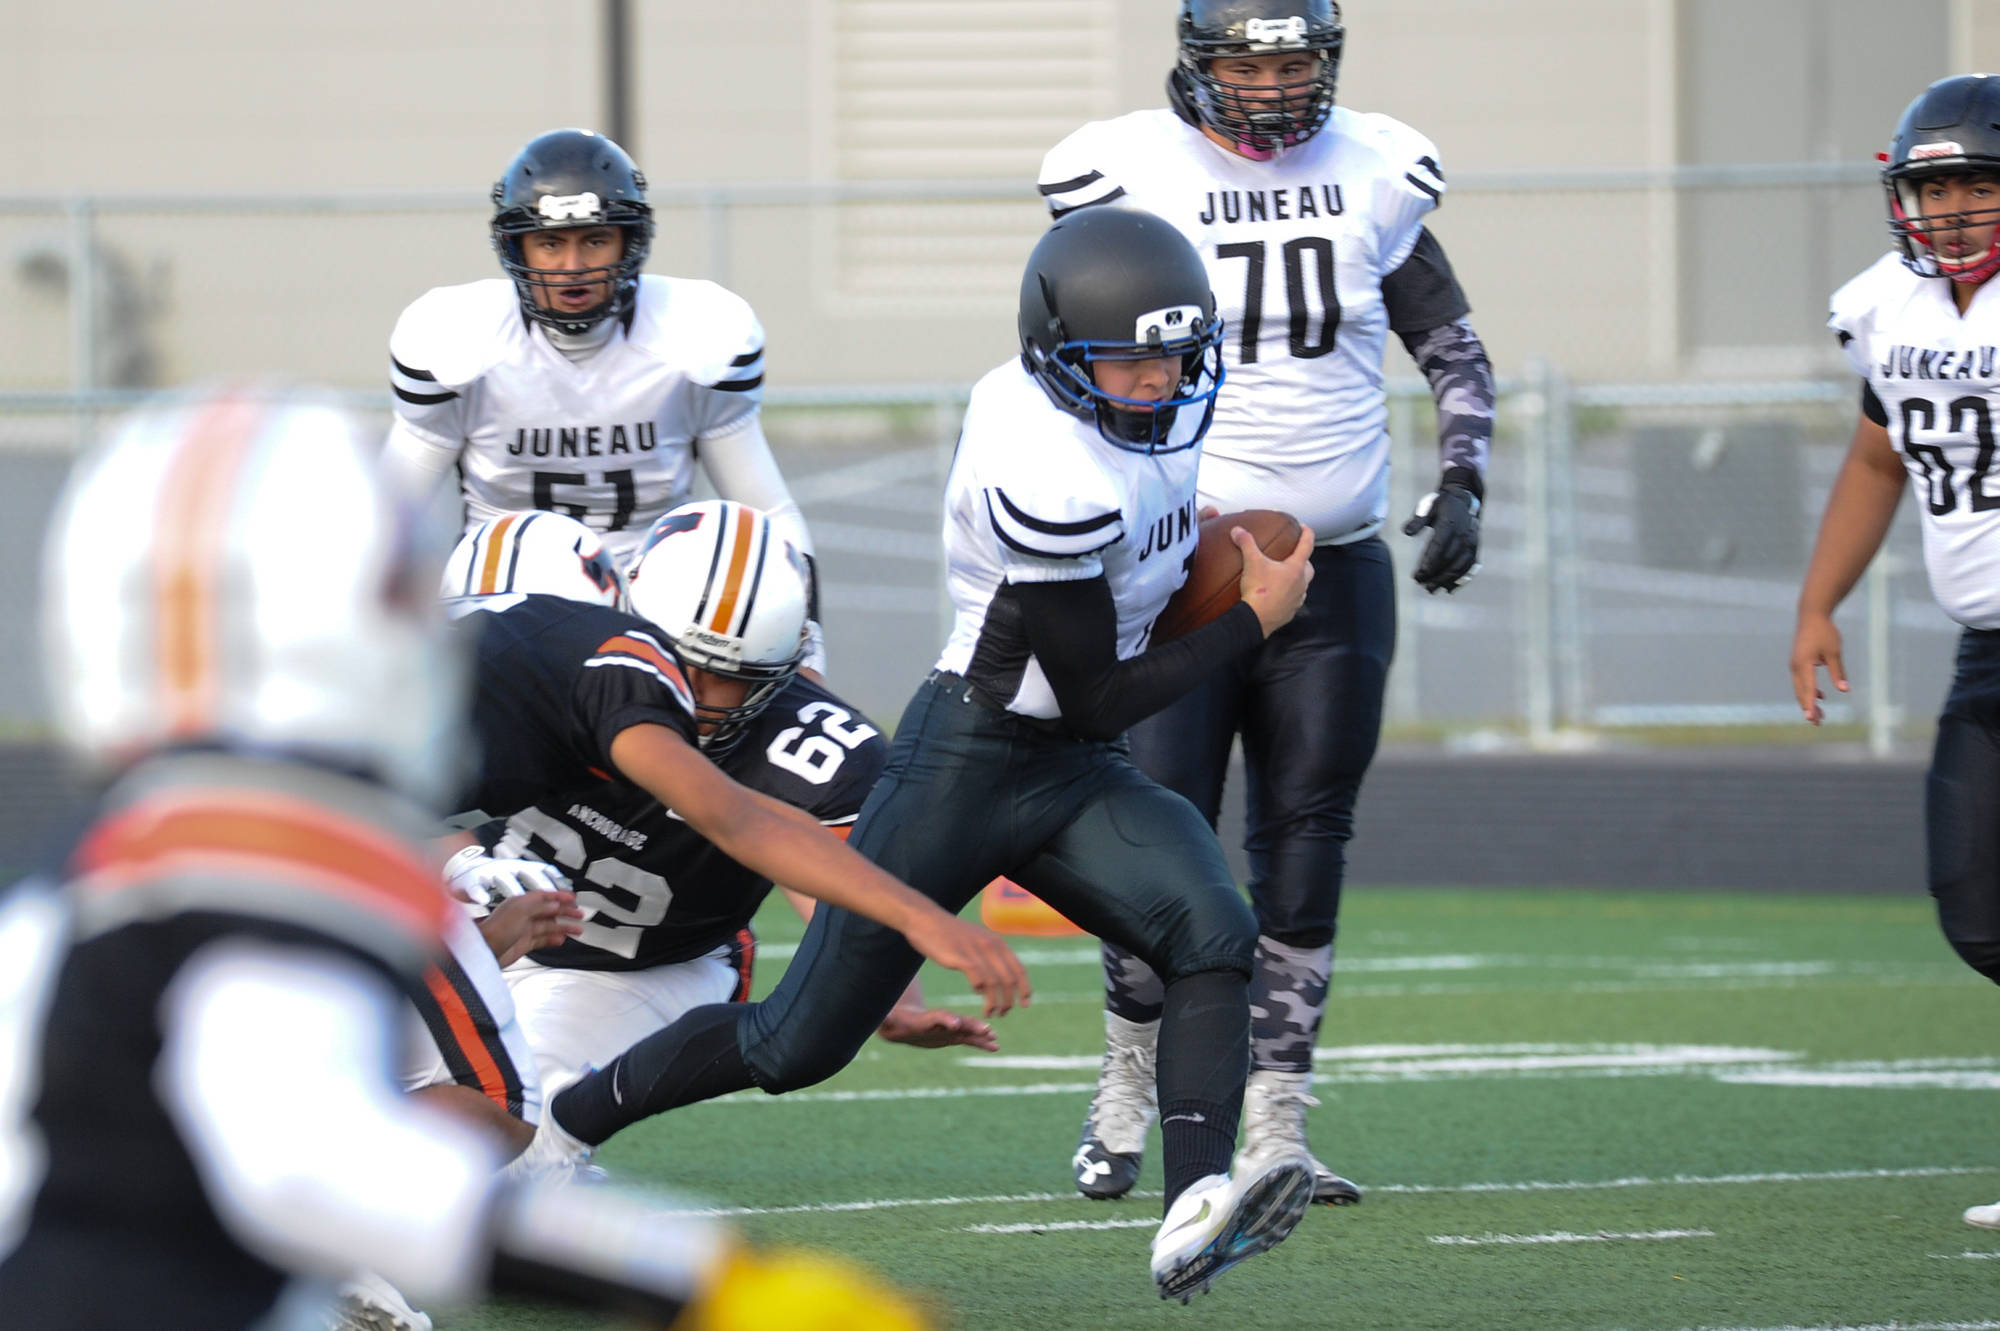 Juneau's Thomas Willhoite finds a hole in the West defense. (Michael Dinneen | For the Juneau Empire)